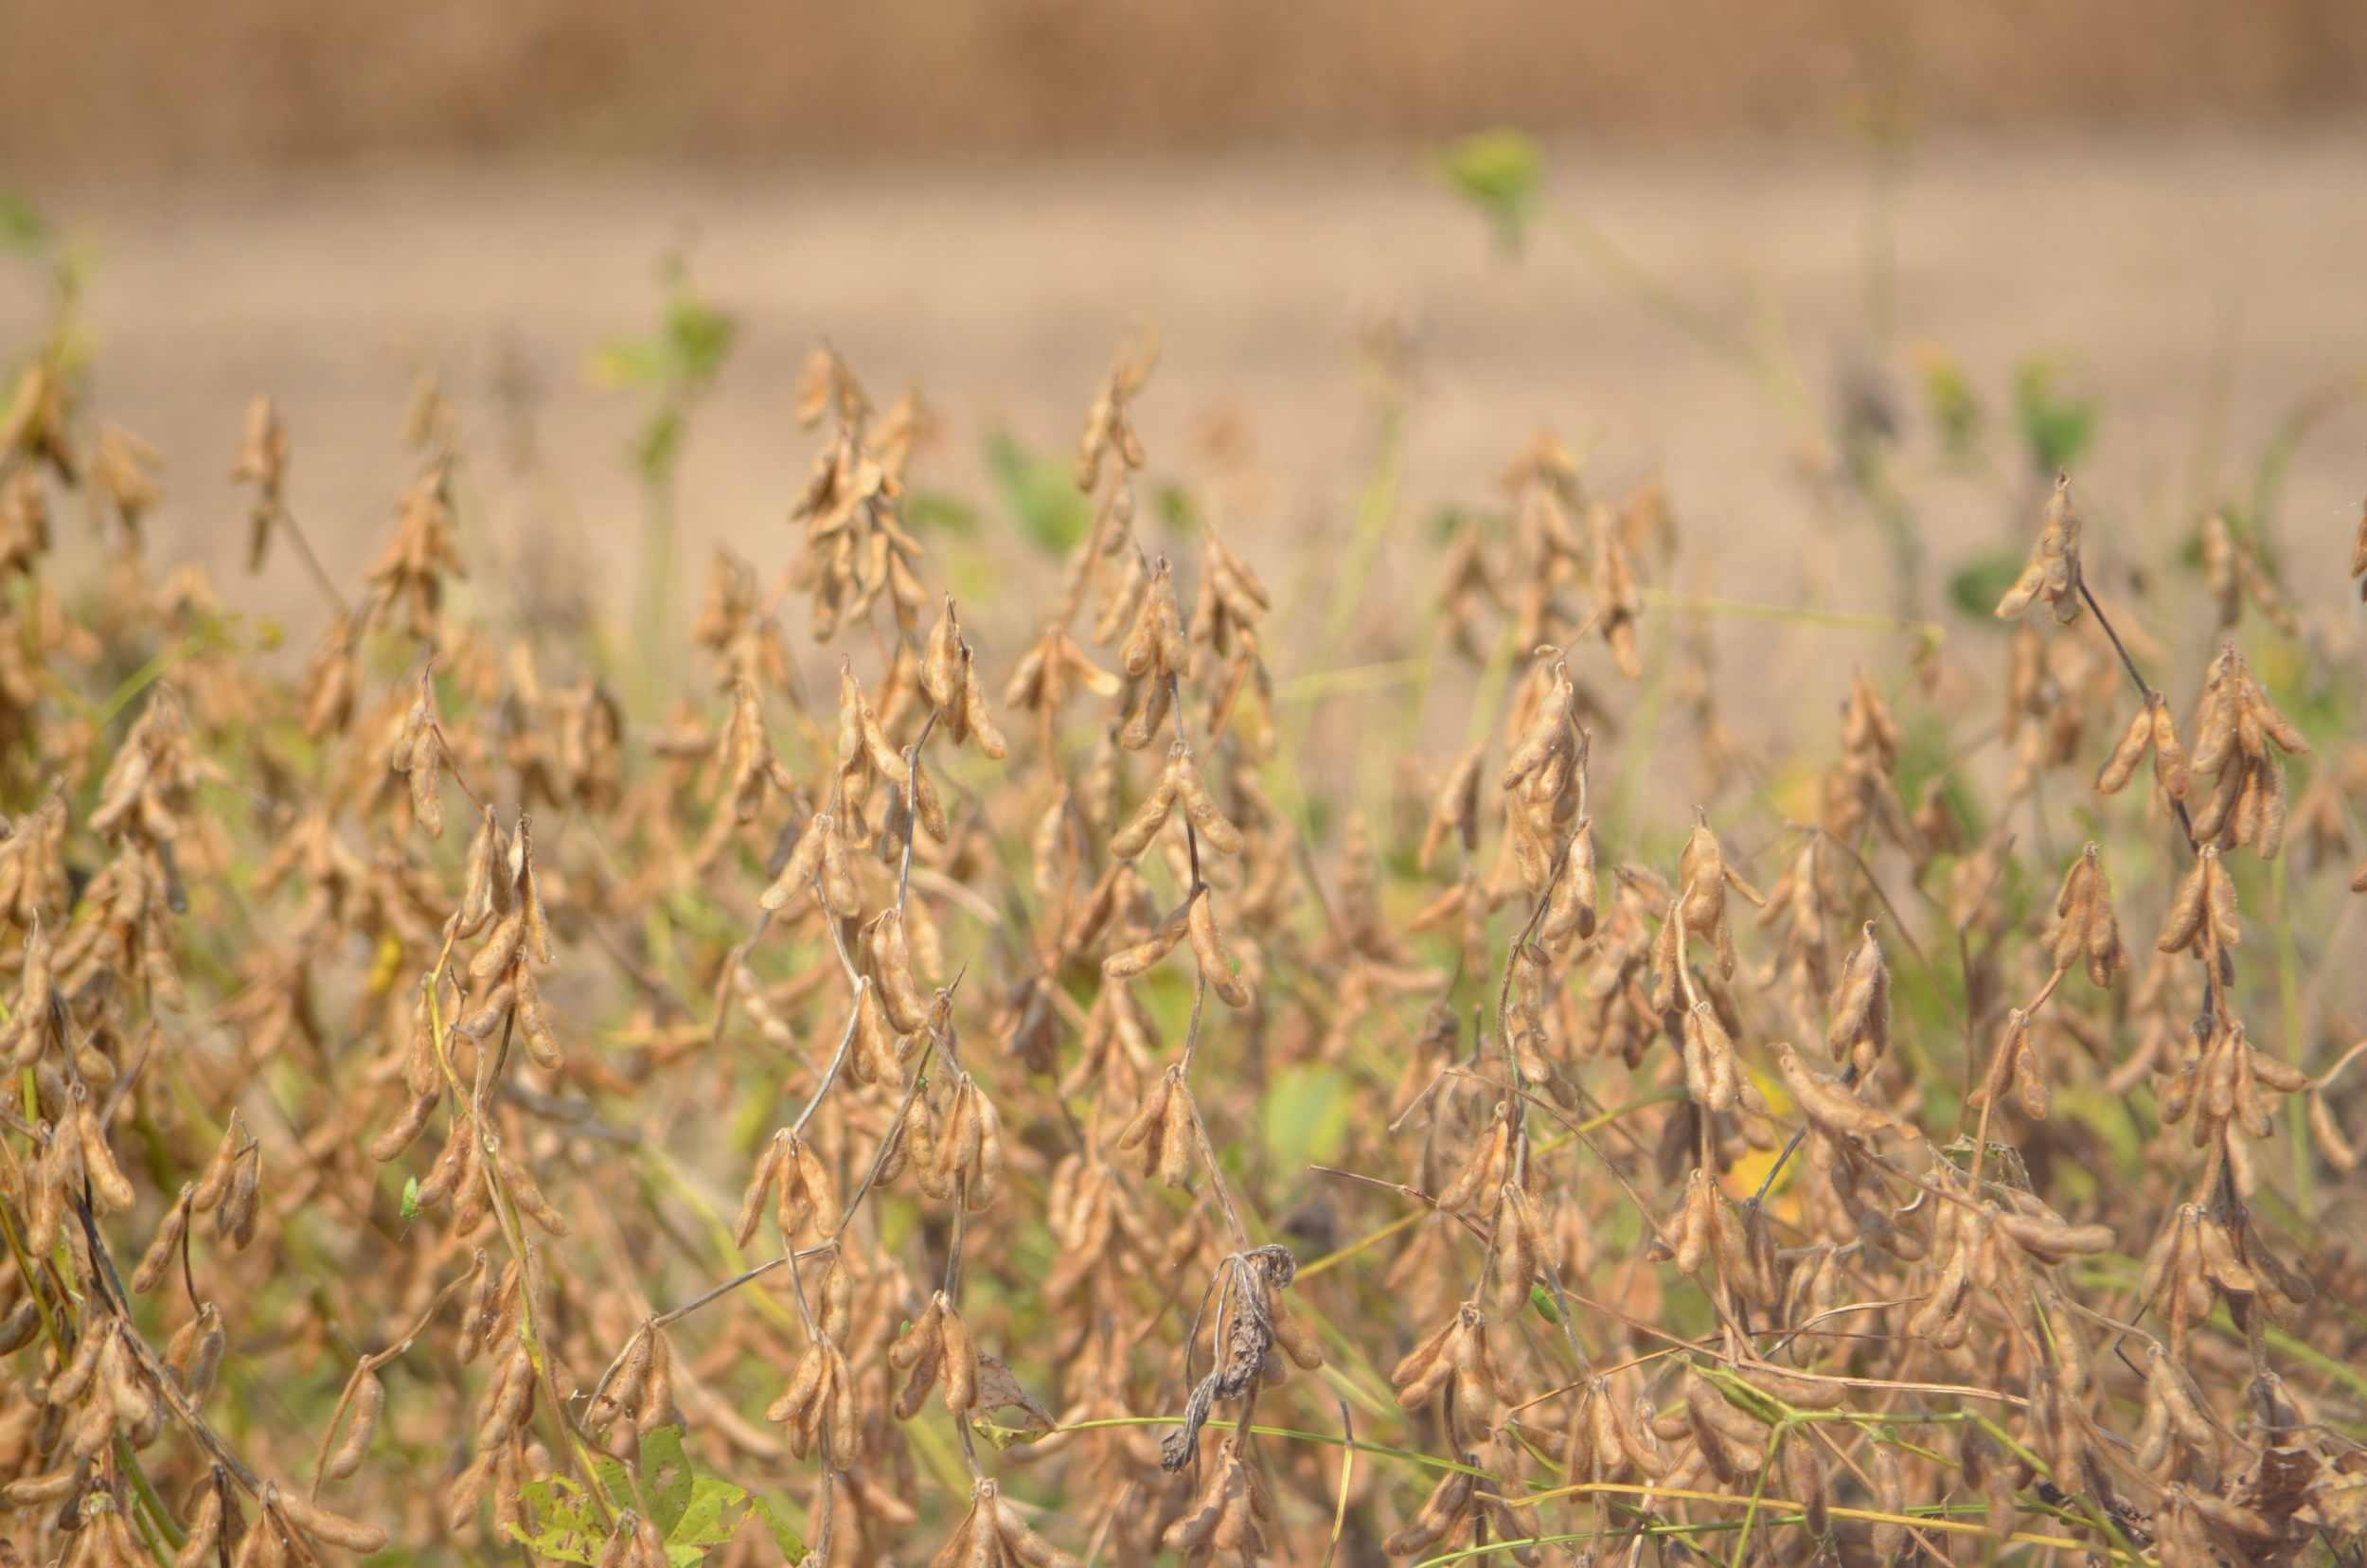 a field of GMO soybeans ready to harvest